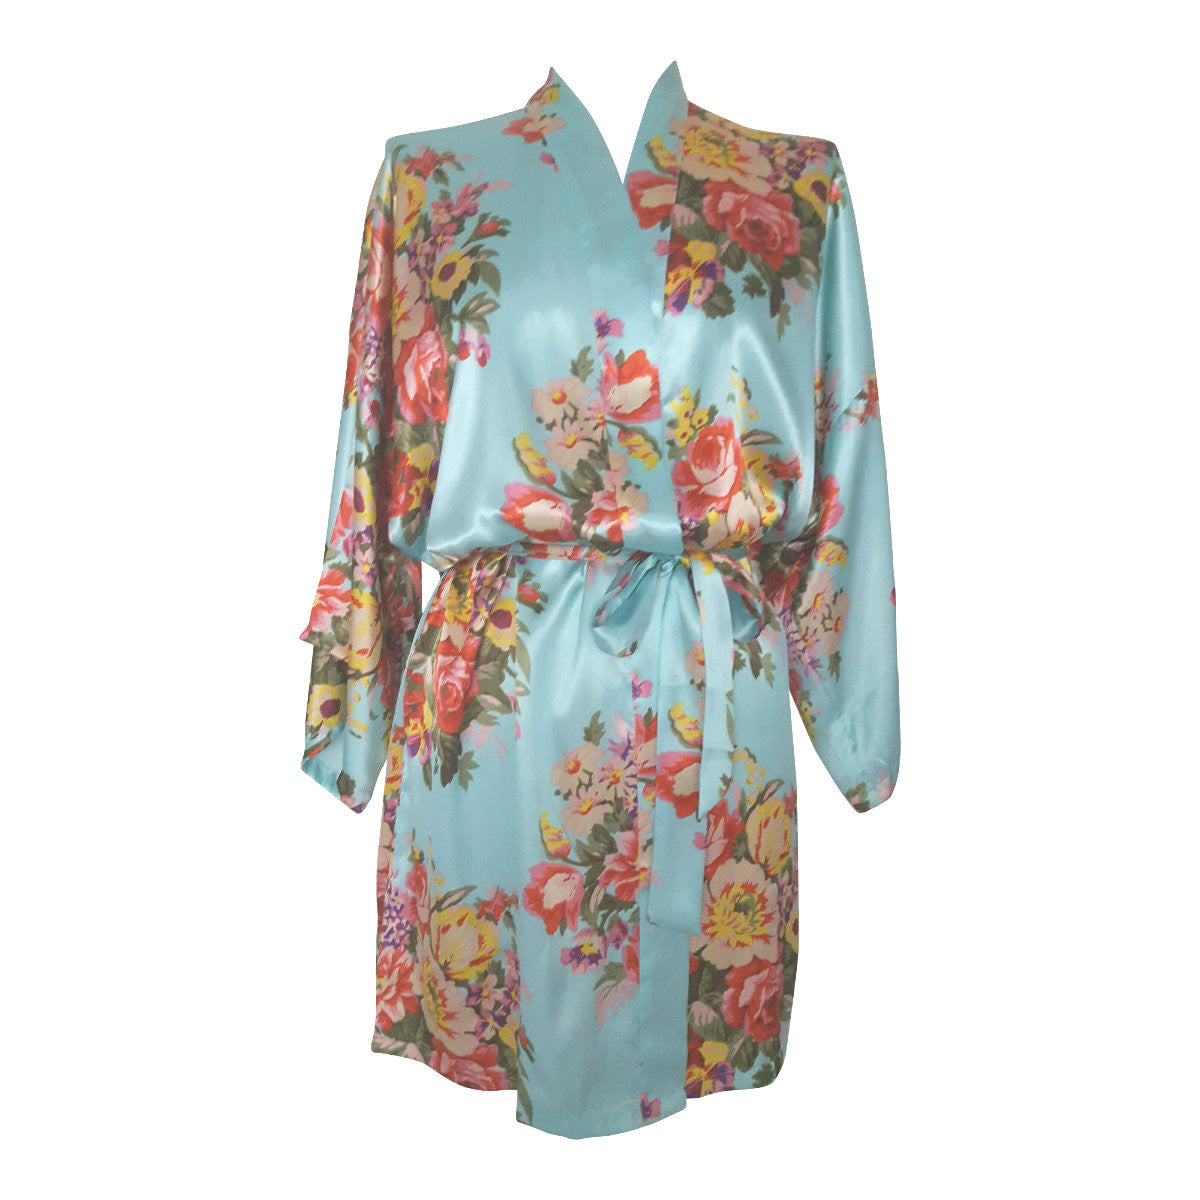 Blue kimono bridal robe perfect for bridesmaids – The Bridal Outlet